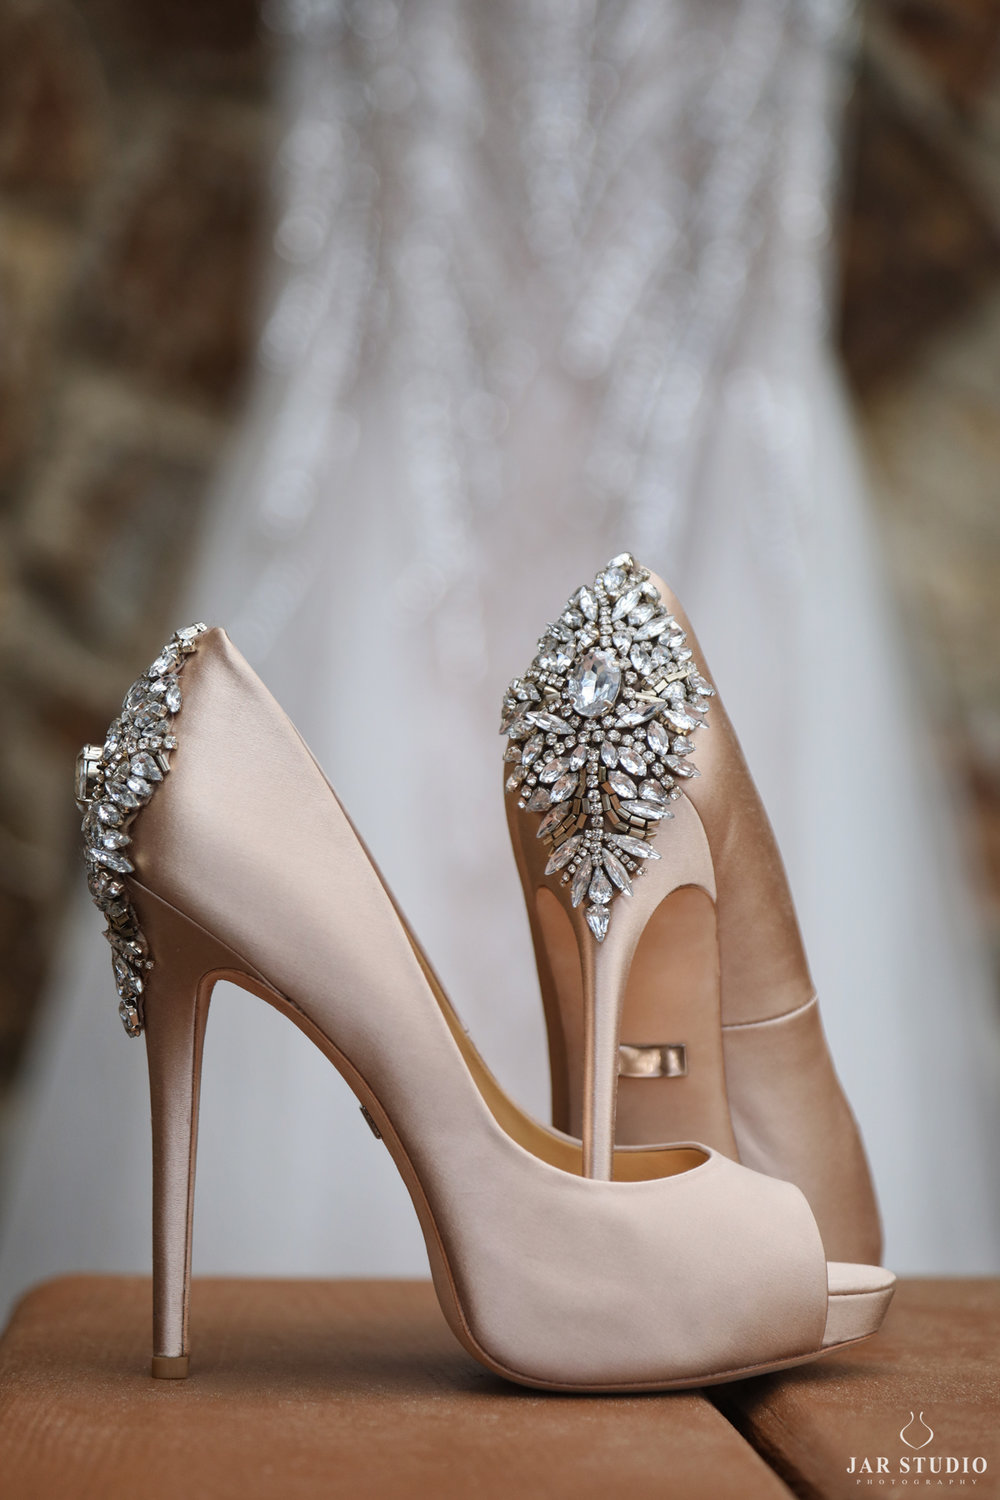 02-unique-wedding-shoes-fashion-jarstudio.jpg